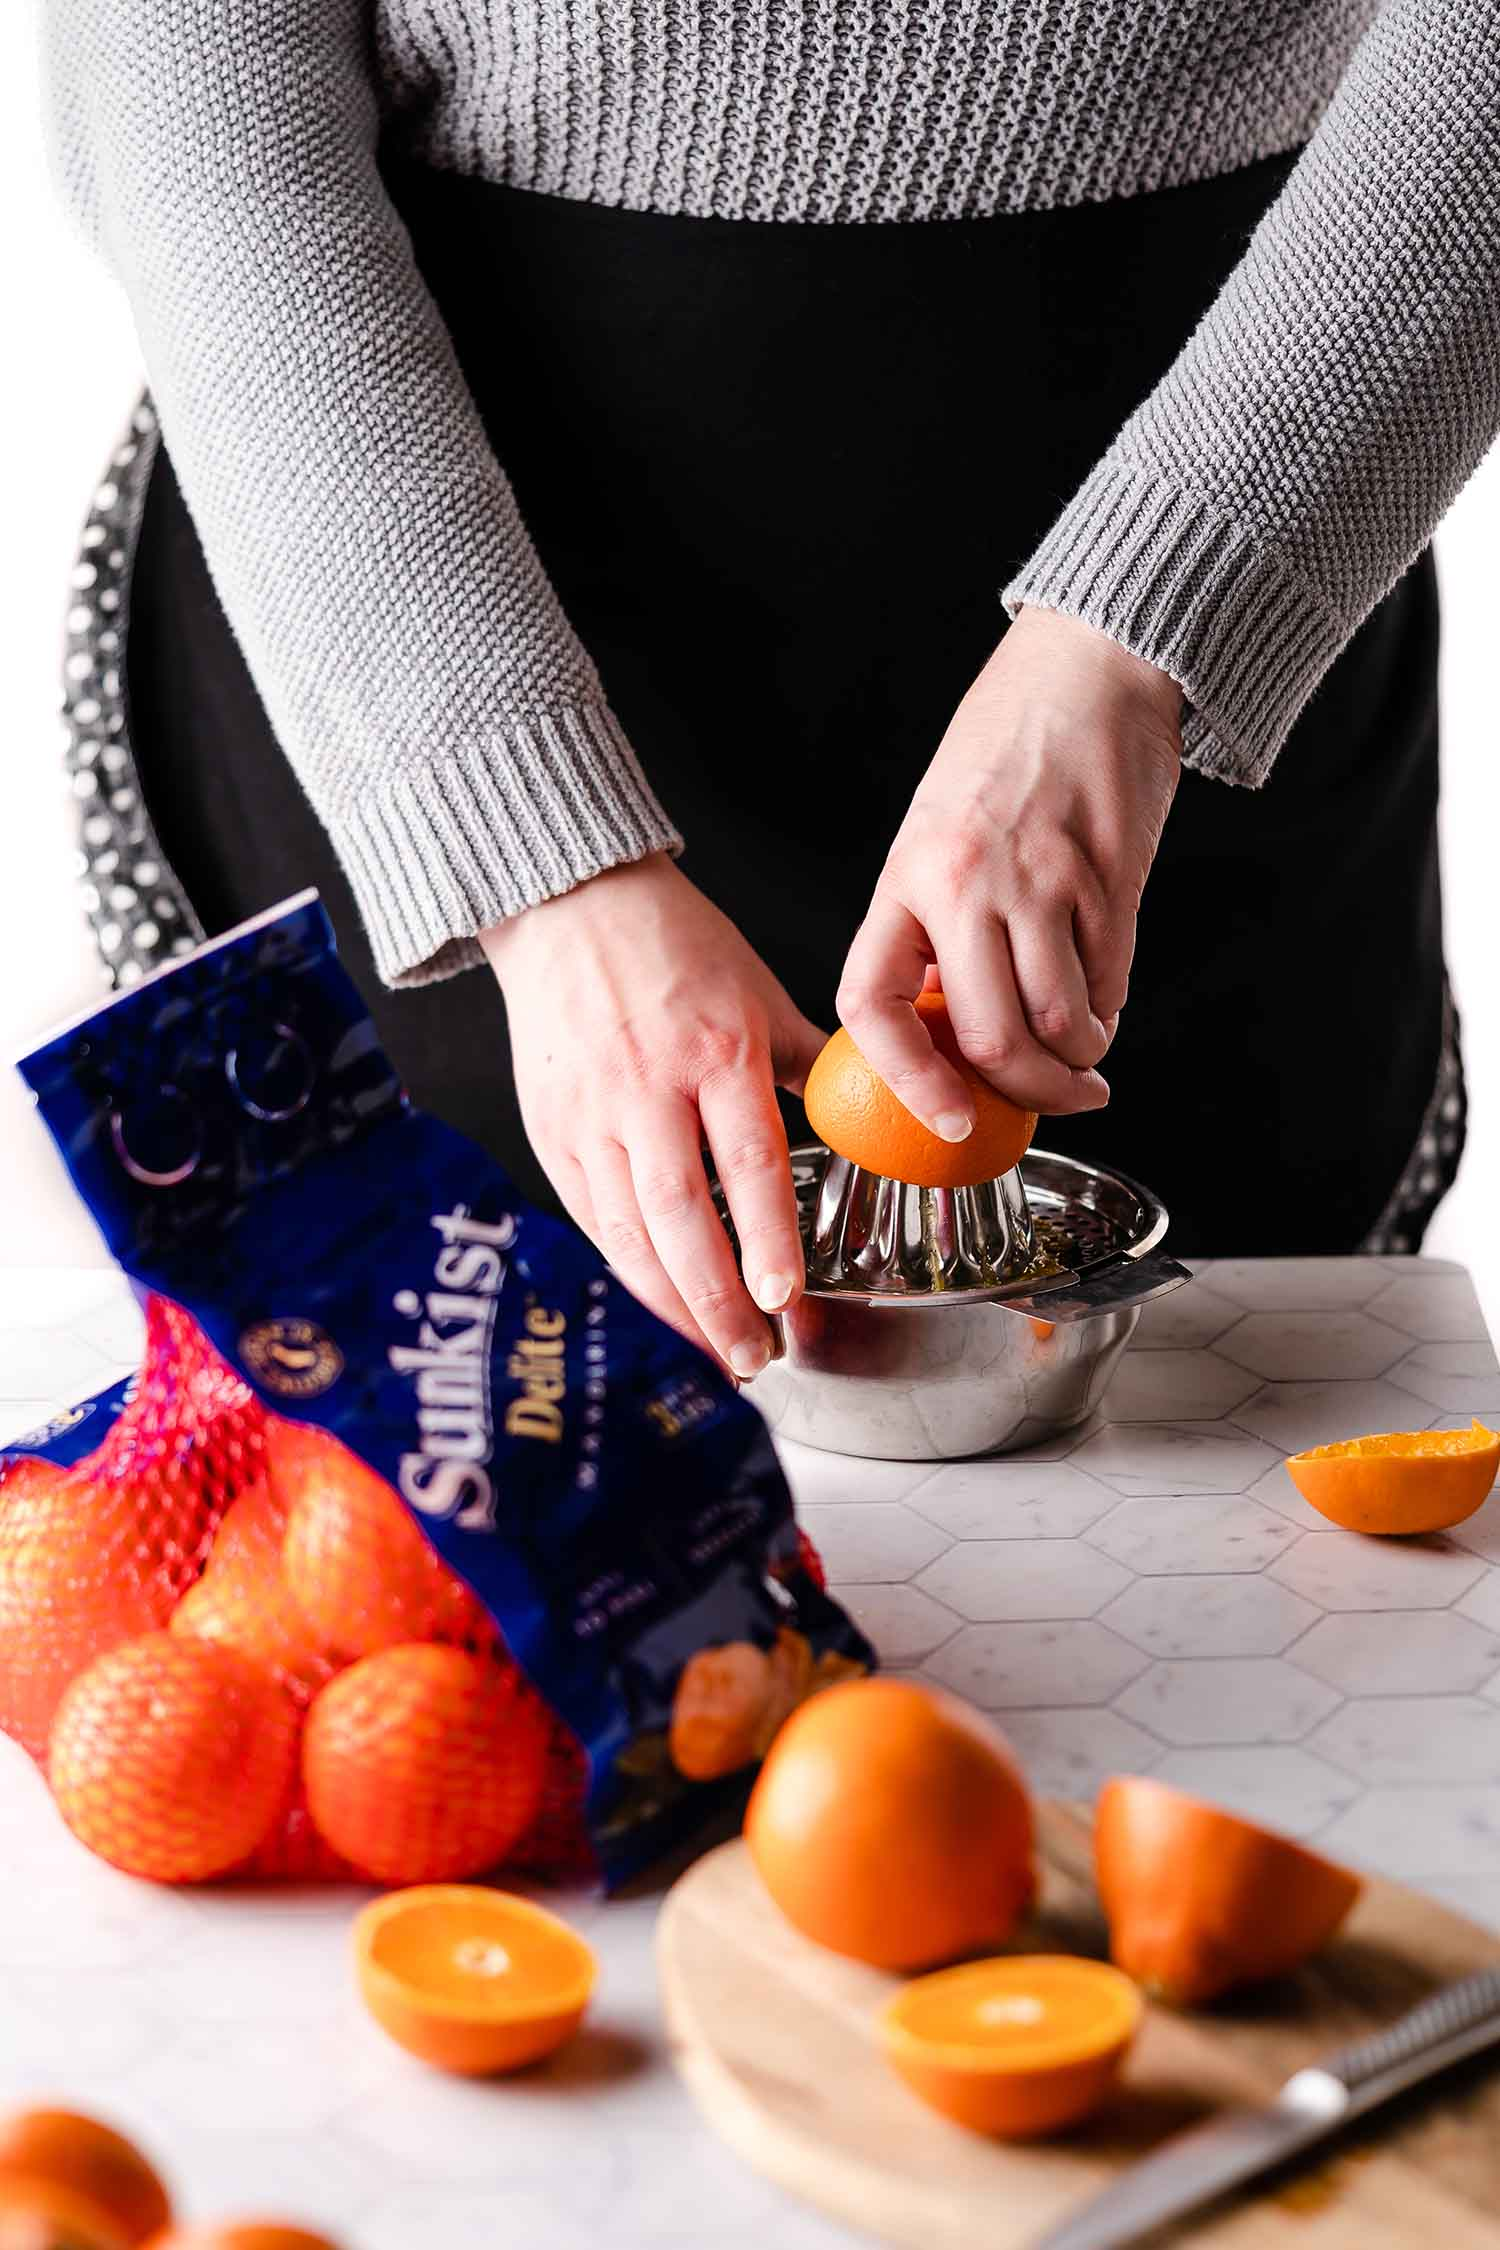 juicing oranges with oranges on cutting board